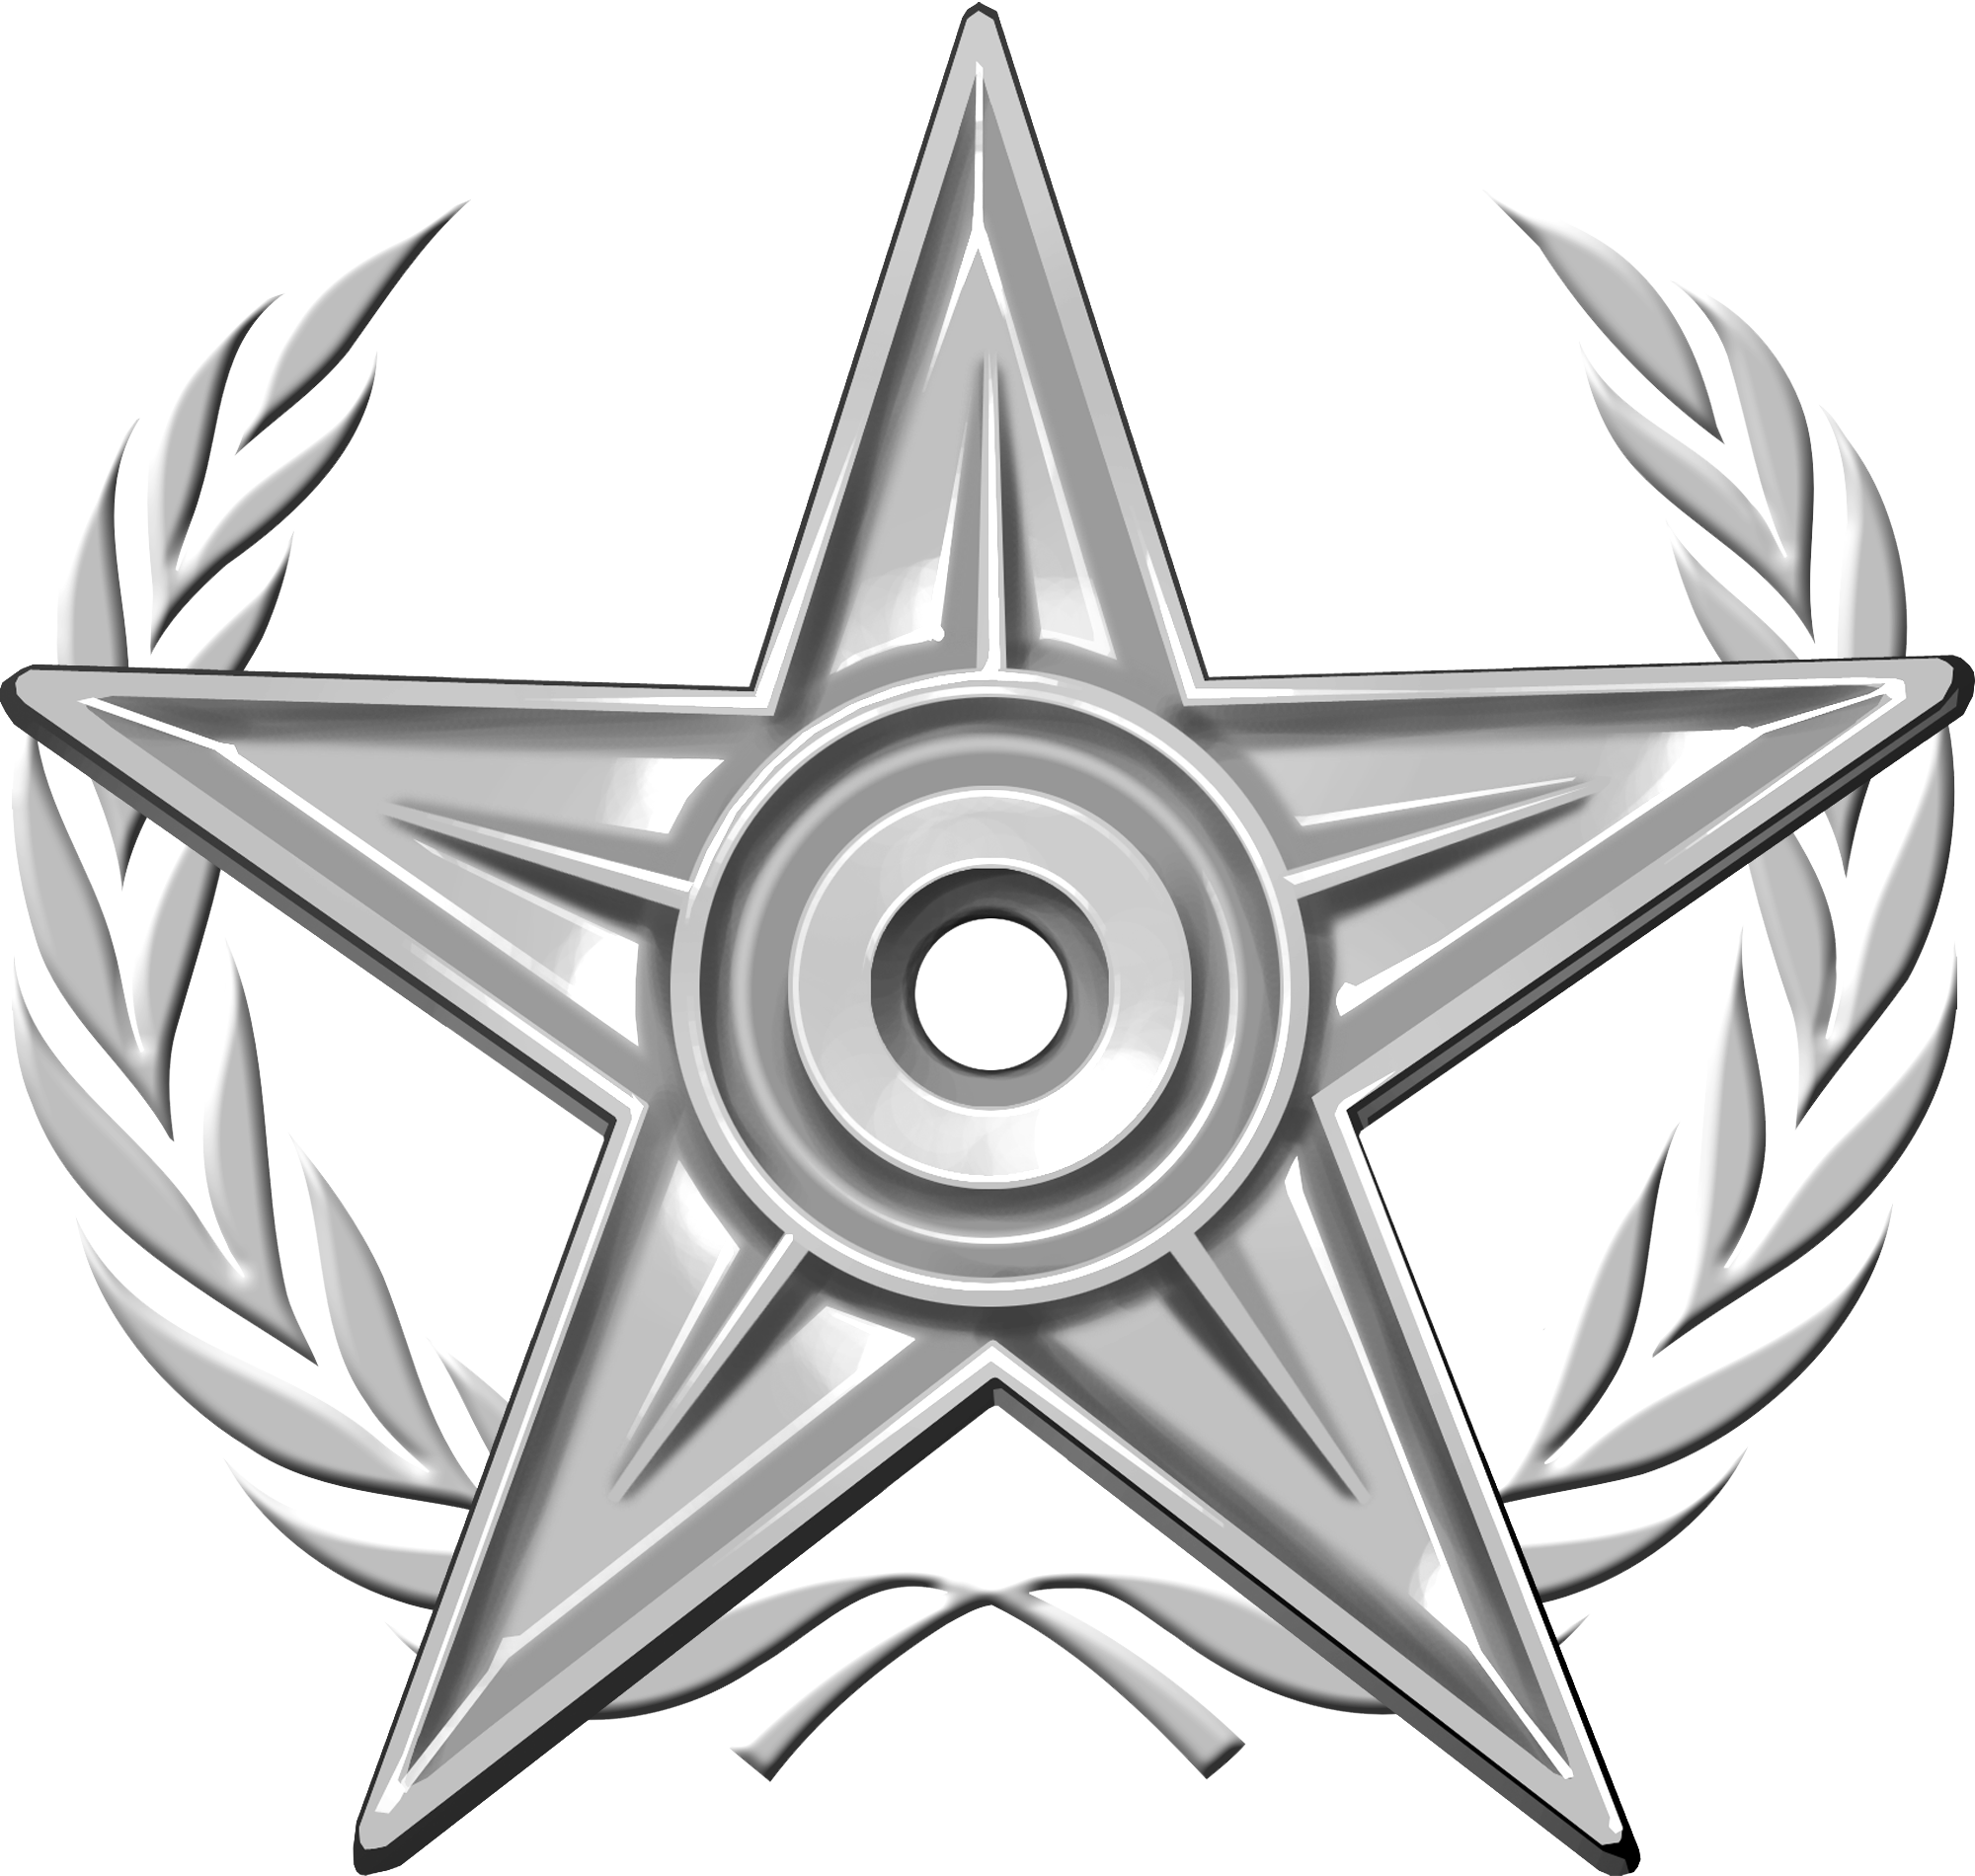 File:Special Silver Barnstar.png - Wikimedia Commons